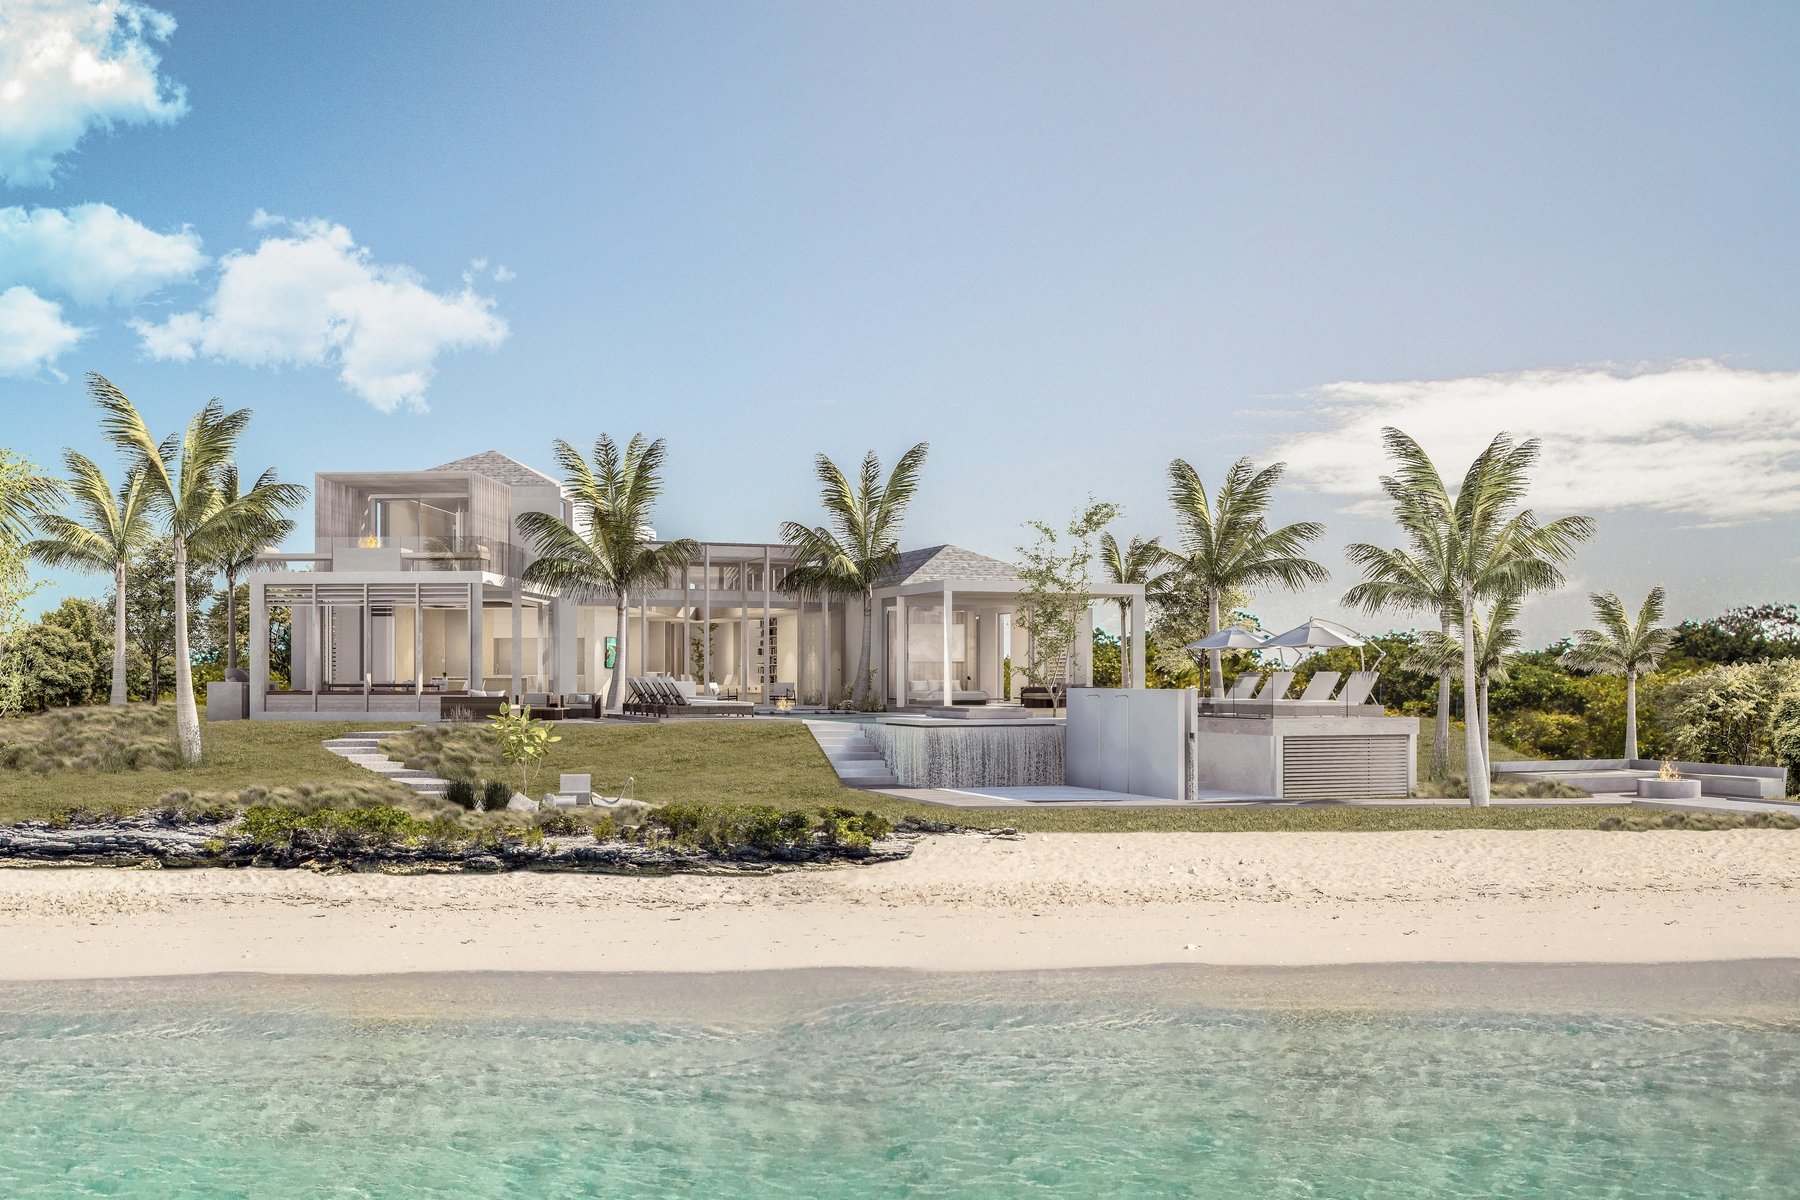 Single Family Home for Sale at Panorama Y House - Beachfront Lot 2 Blue Cay Estate, Leeward, Turks And Caicos Islands